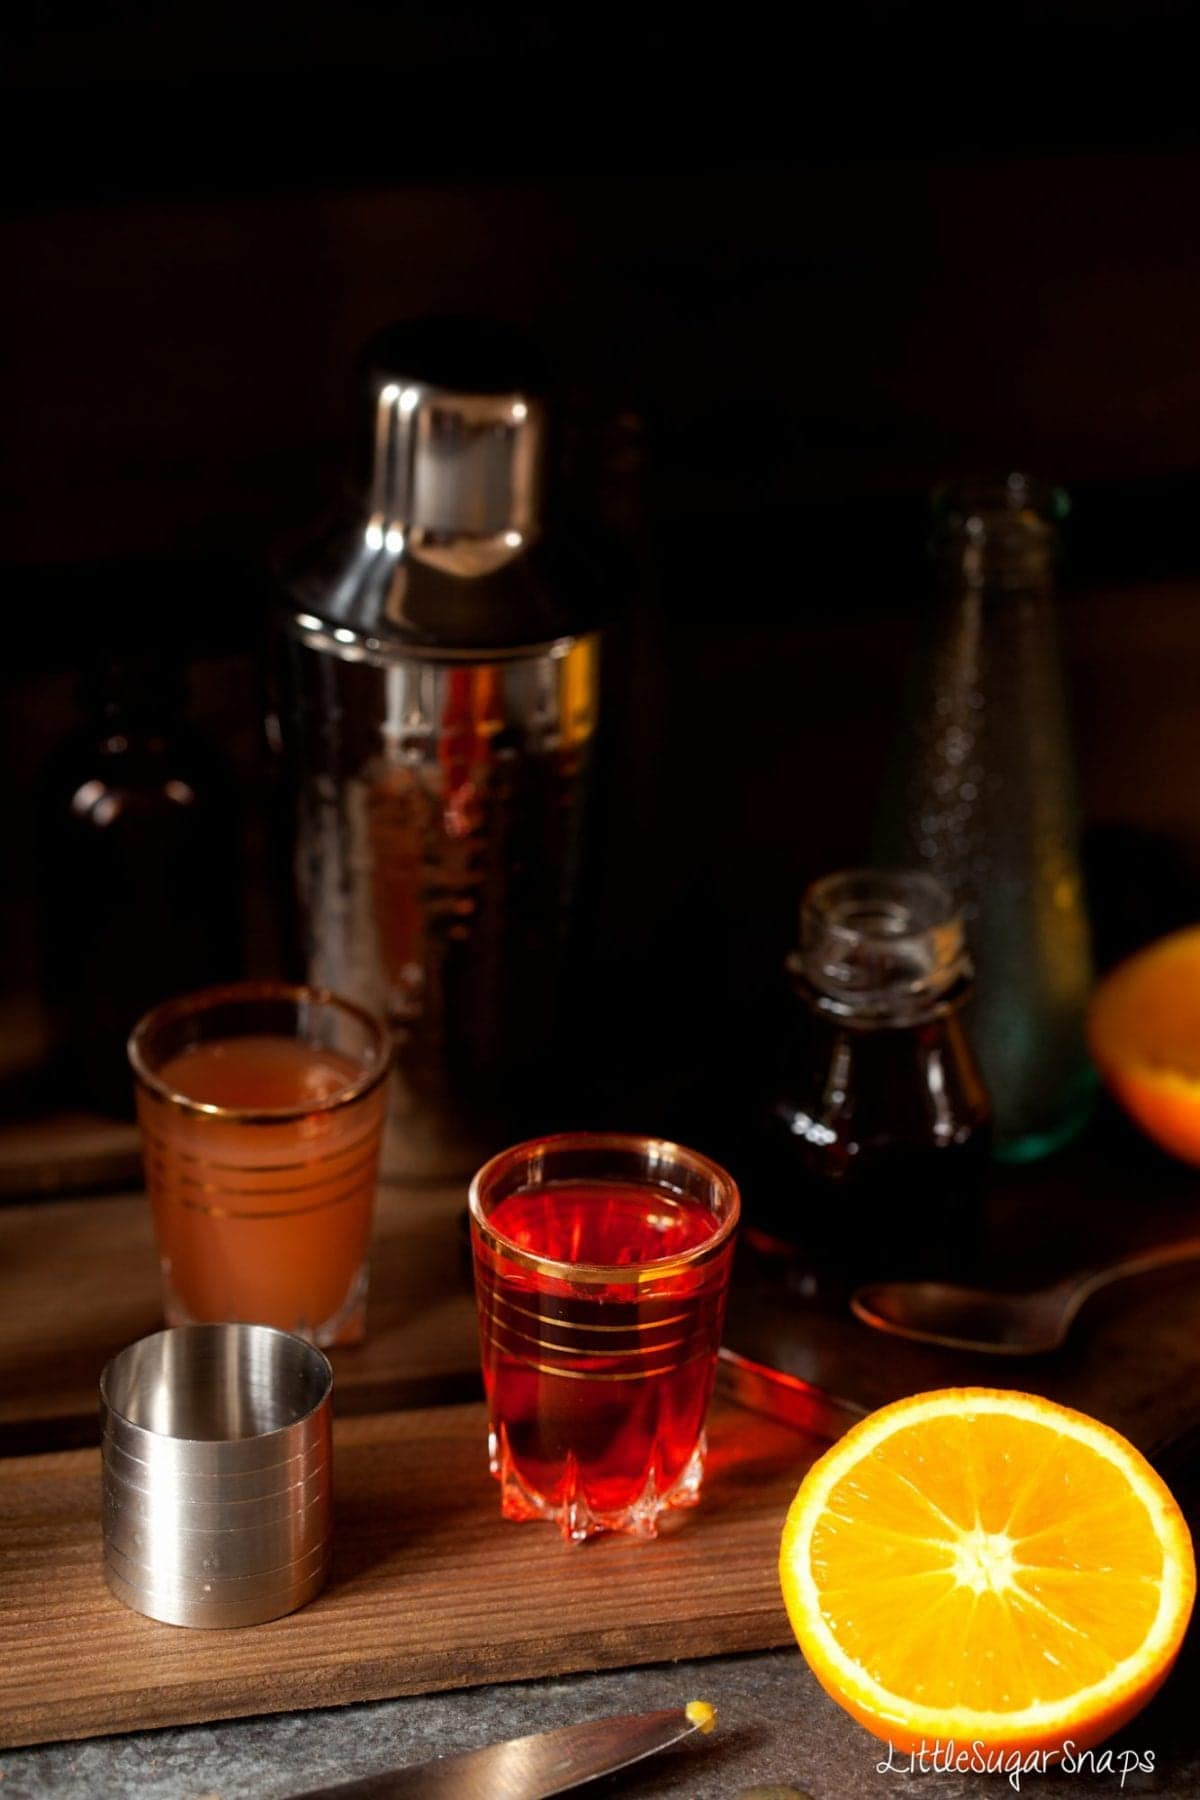 Shot glass containing Aperol  with grapefruit juice and fresh orange alongside.